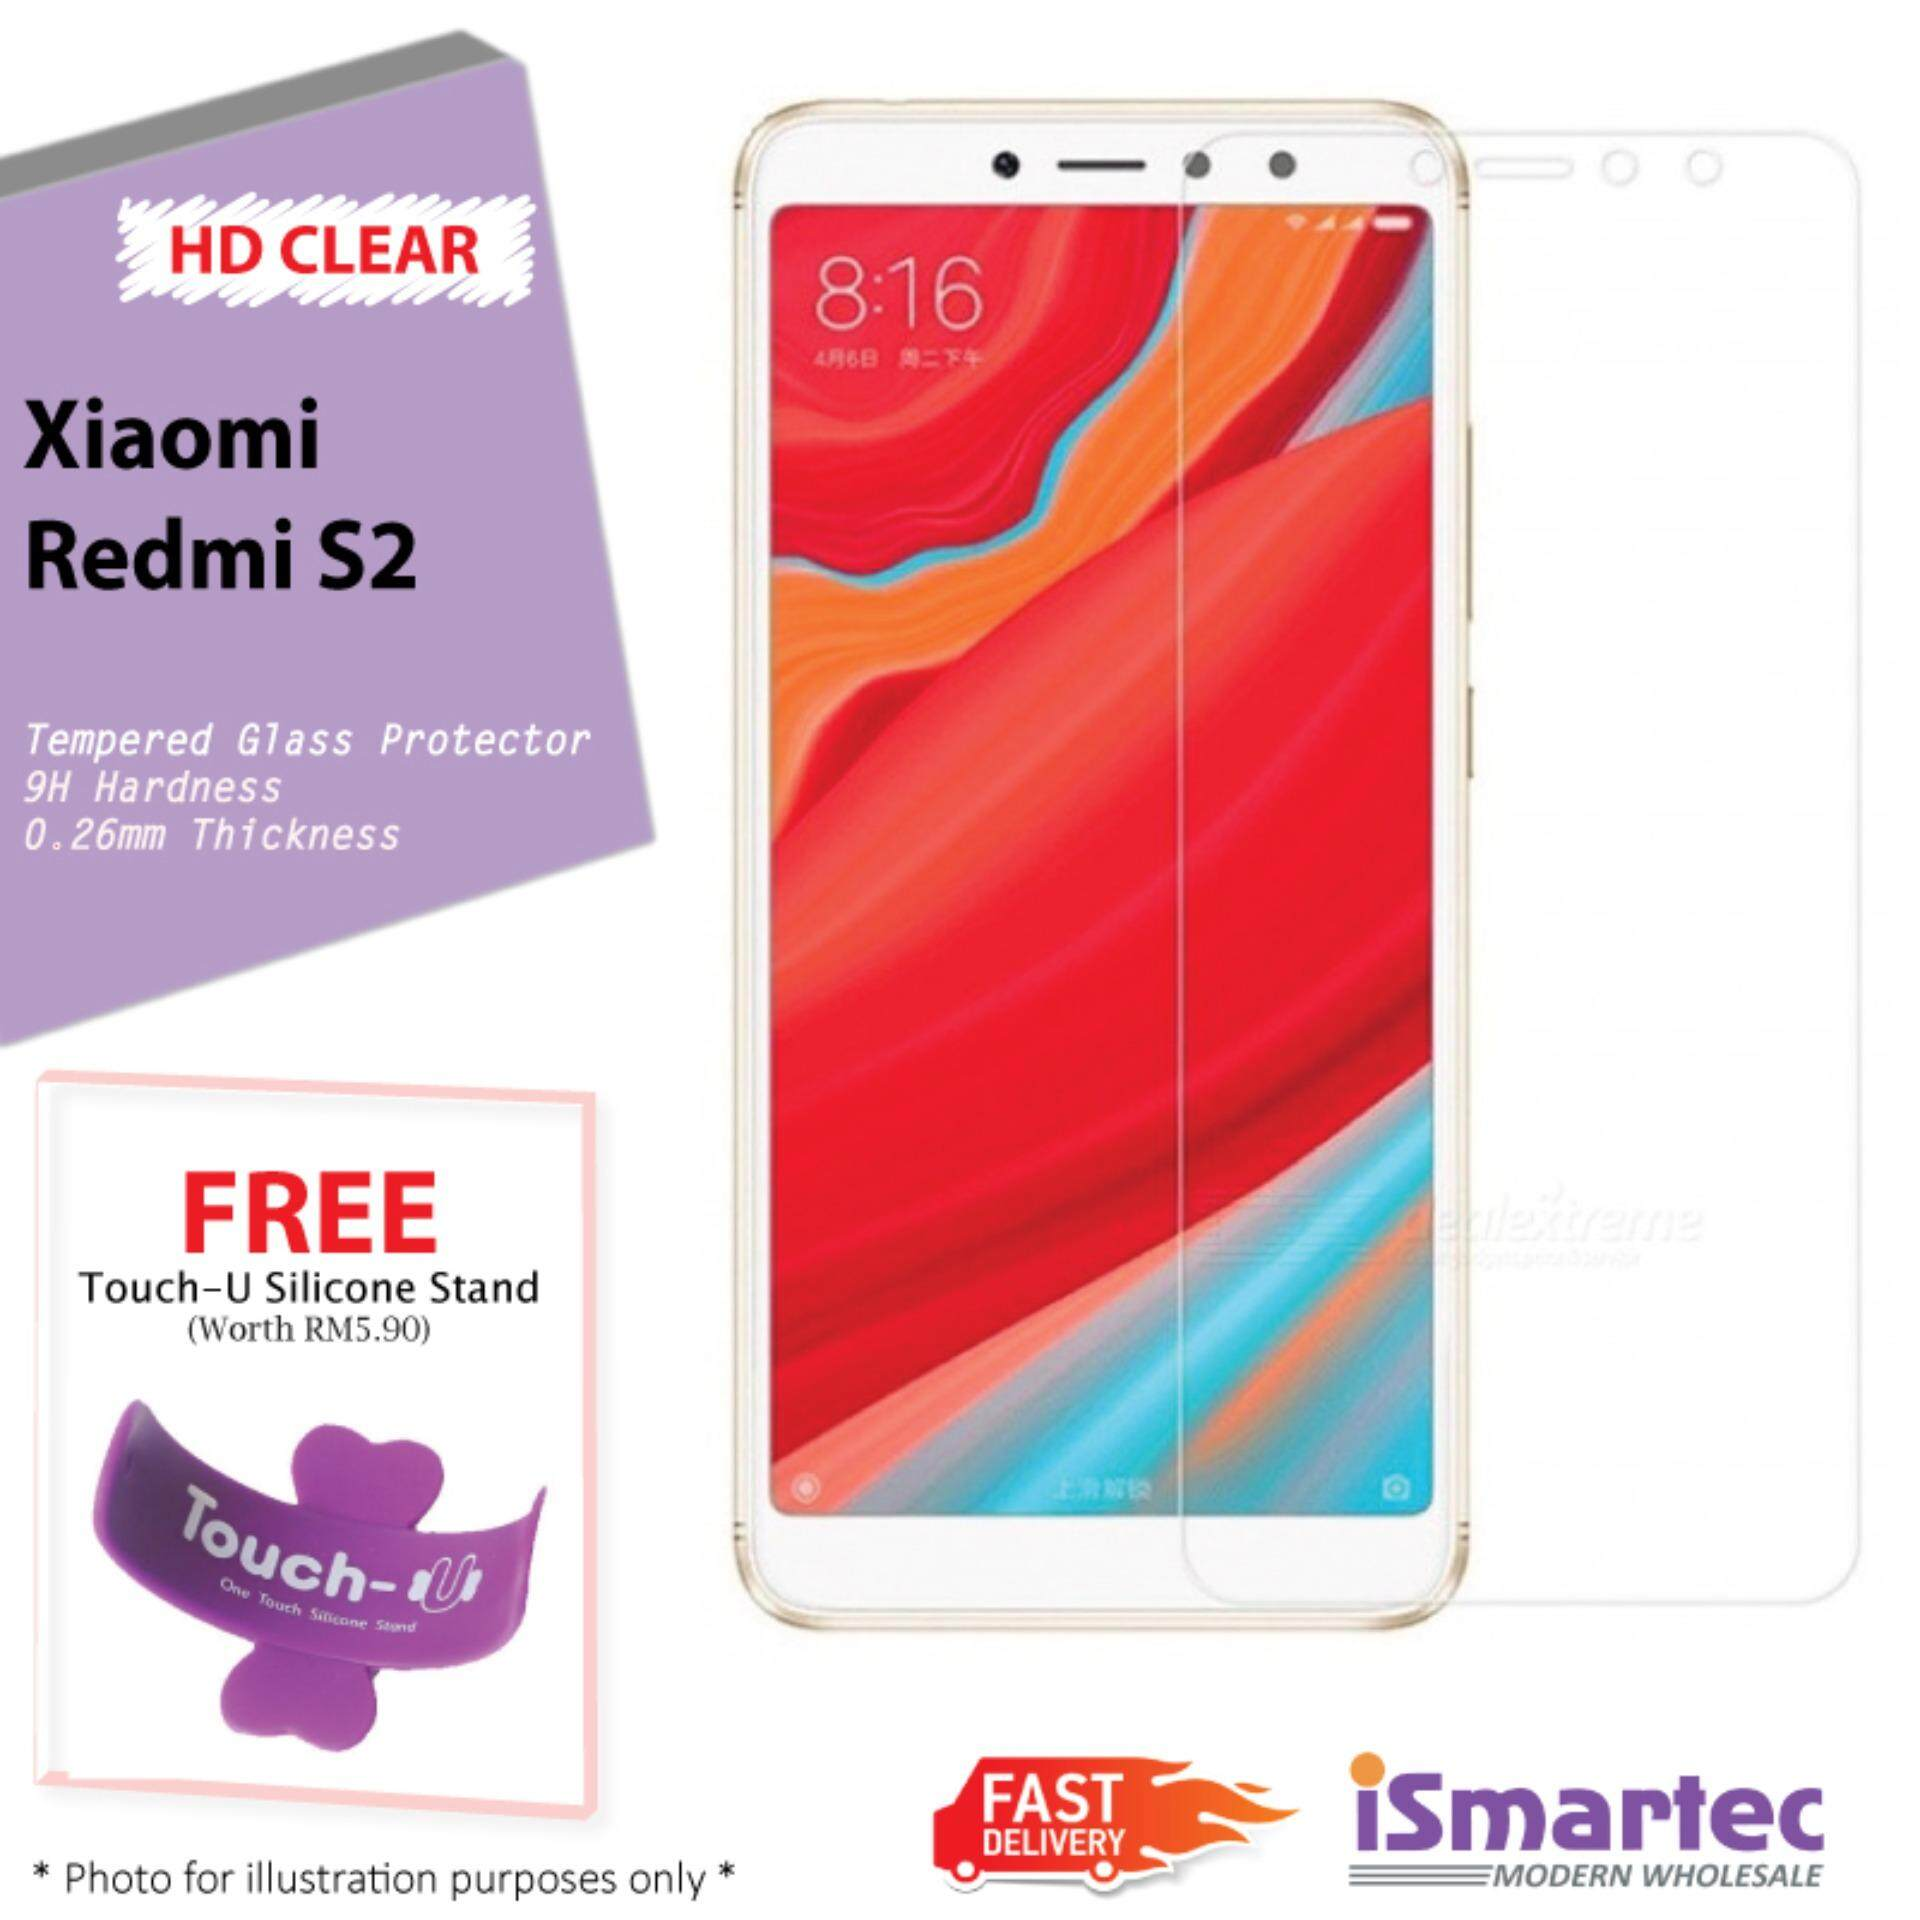 Buy Xiaomi Malaysia Products At The Best Prices On Lazada Smile Tempered Glass Redmi4x Clear Hd For Redmi S2 Free Touch U